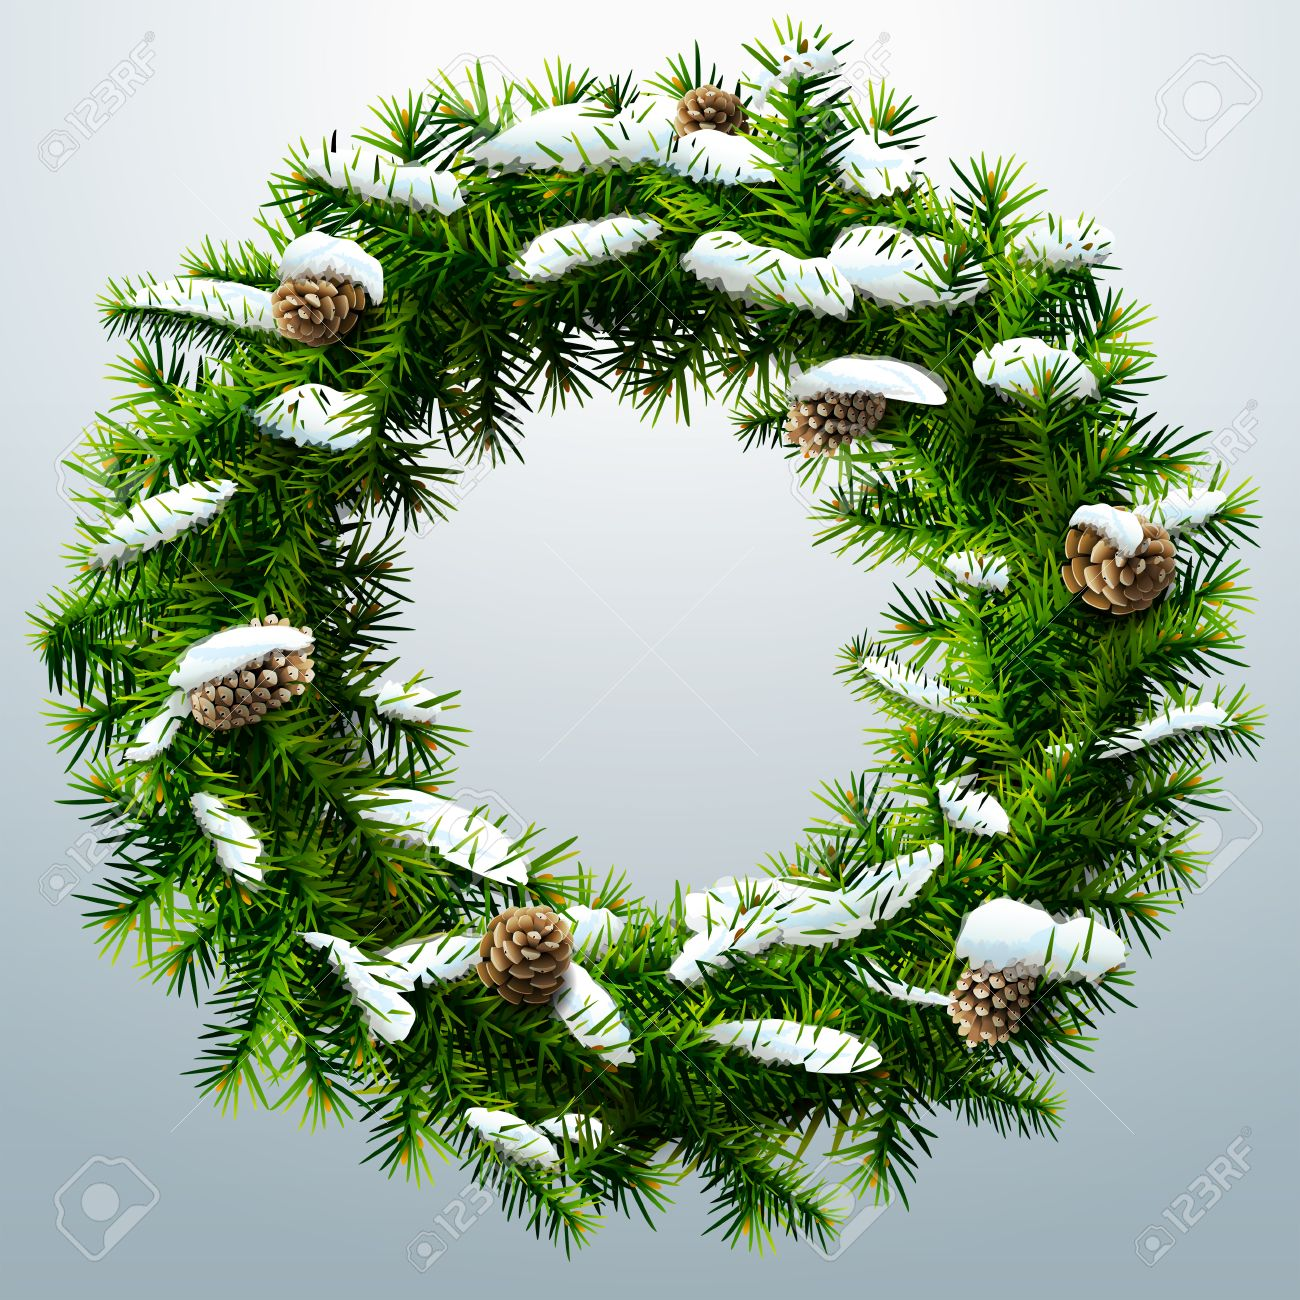 Pine Branches For Decoration Christmas Wreath With Pinecones And Snow Wreath Of Pine Branches